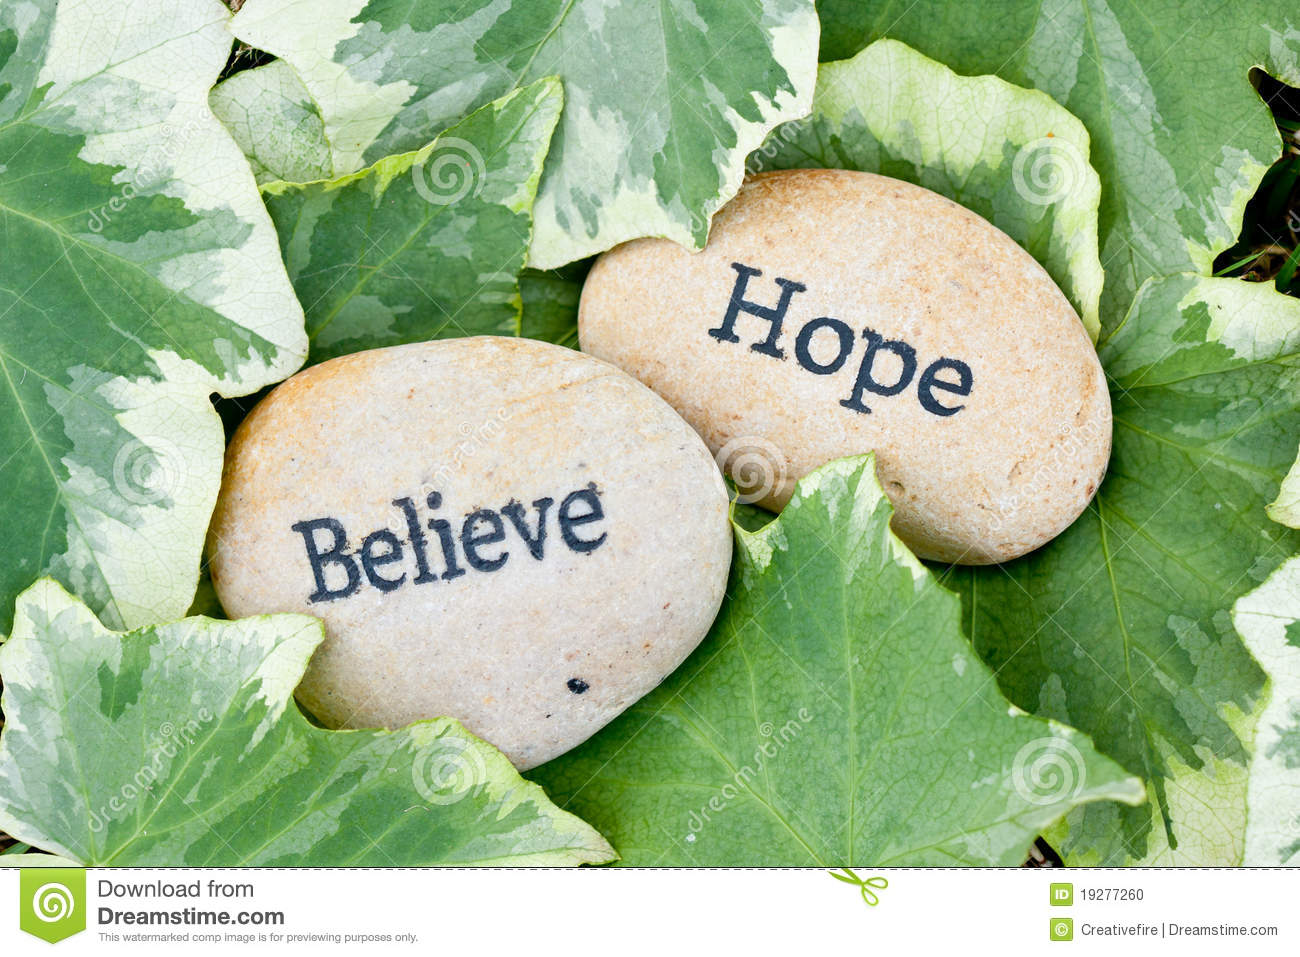 Image result for hope pics